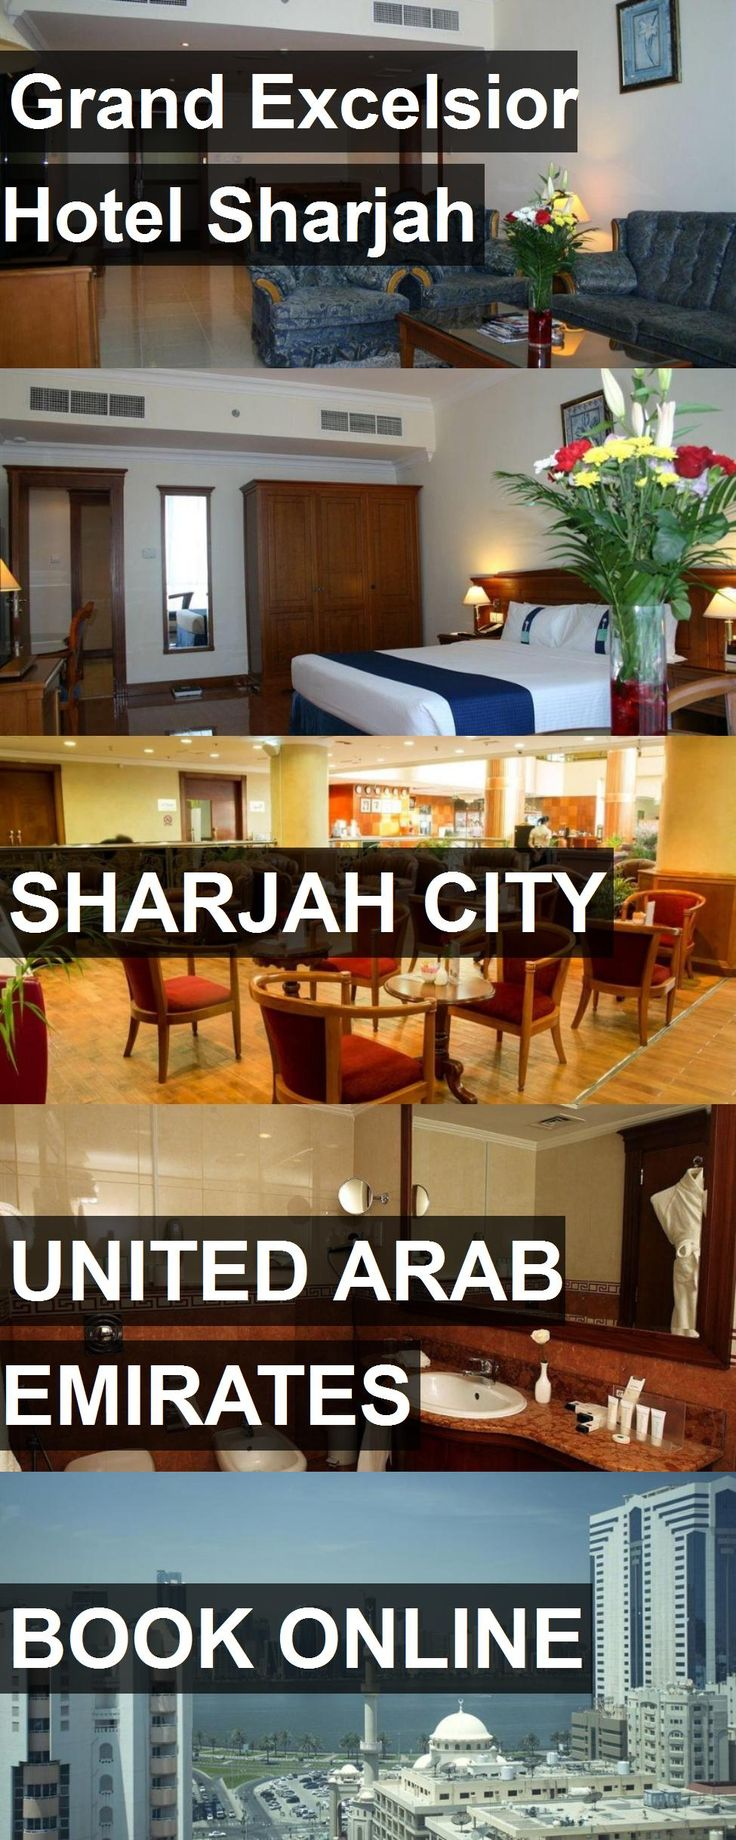 Grand Excelsior Hotel Sharjah in Sharjah City, United Arab Emirates. For more information, photos, reviews and best prices please follow the link. #UnitedArabEmirates #SharjahCity #travel #vacation #hotel